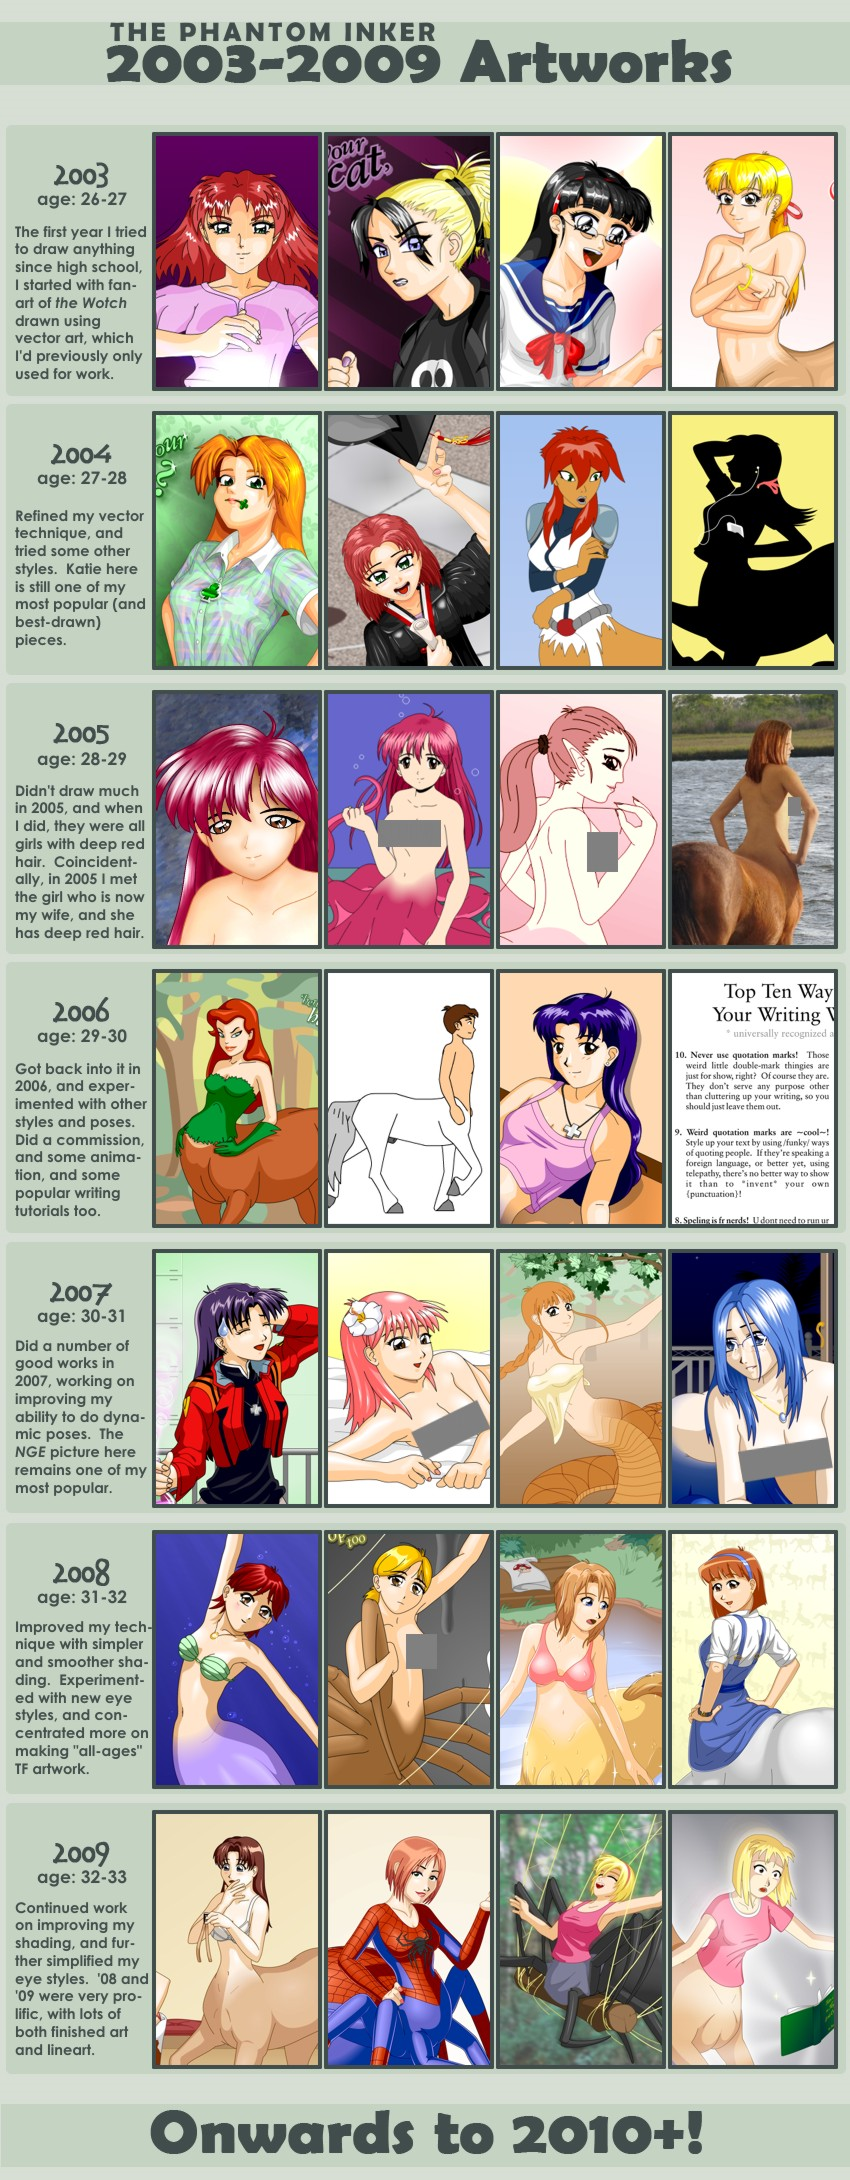 2003-2009 Artworks Meme by phantom-inker